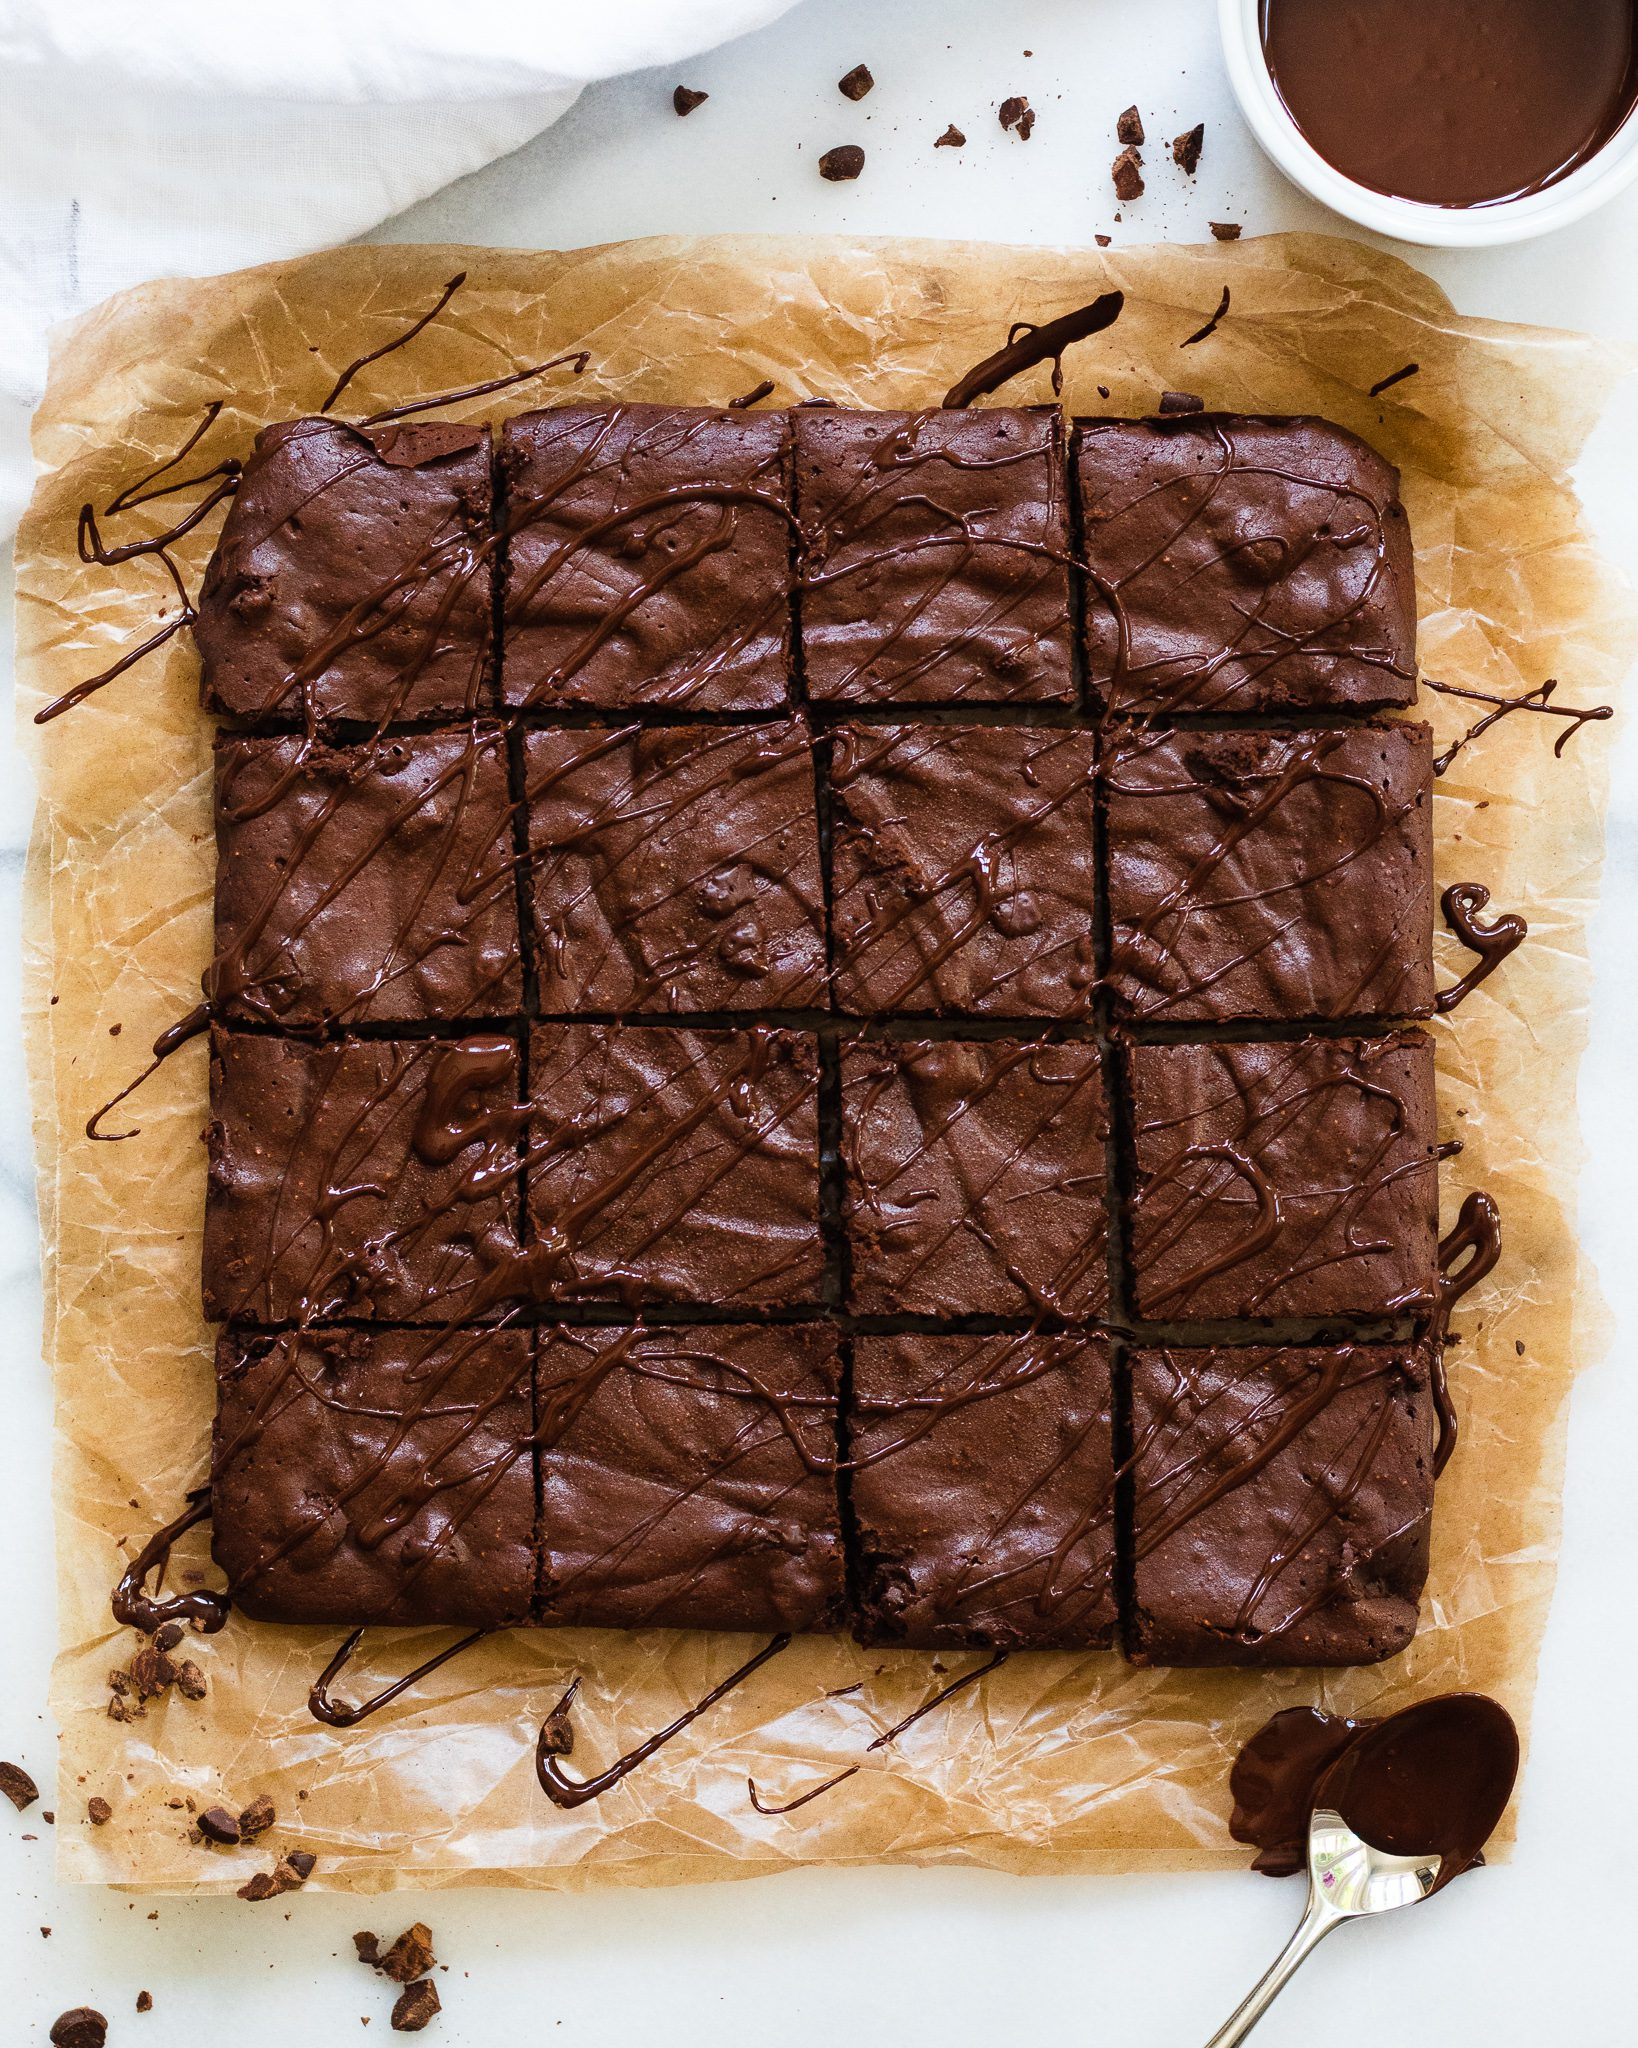 Paleo fudge brownies with chocolate drizzle